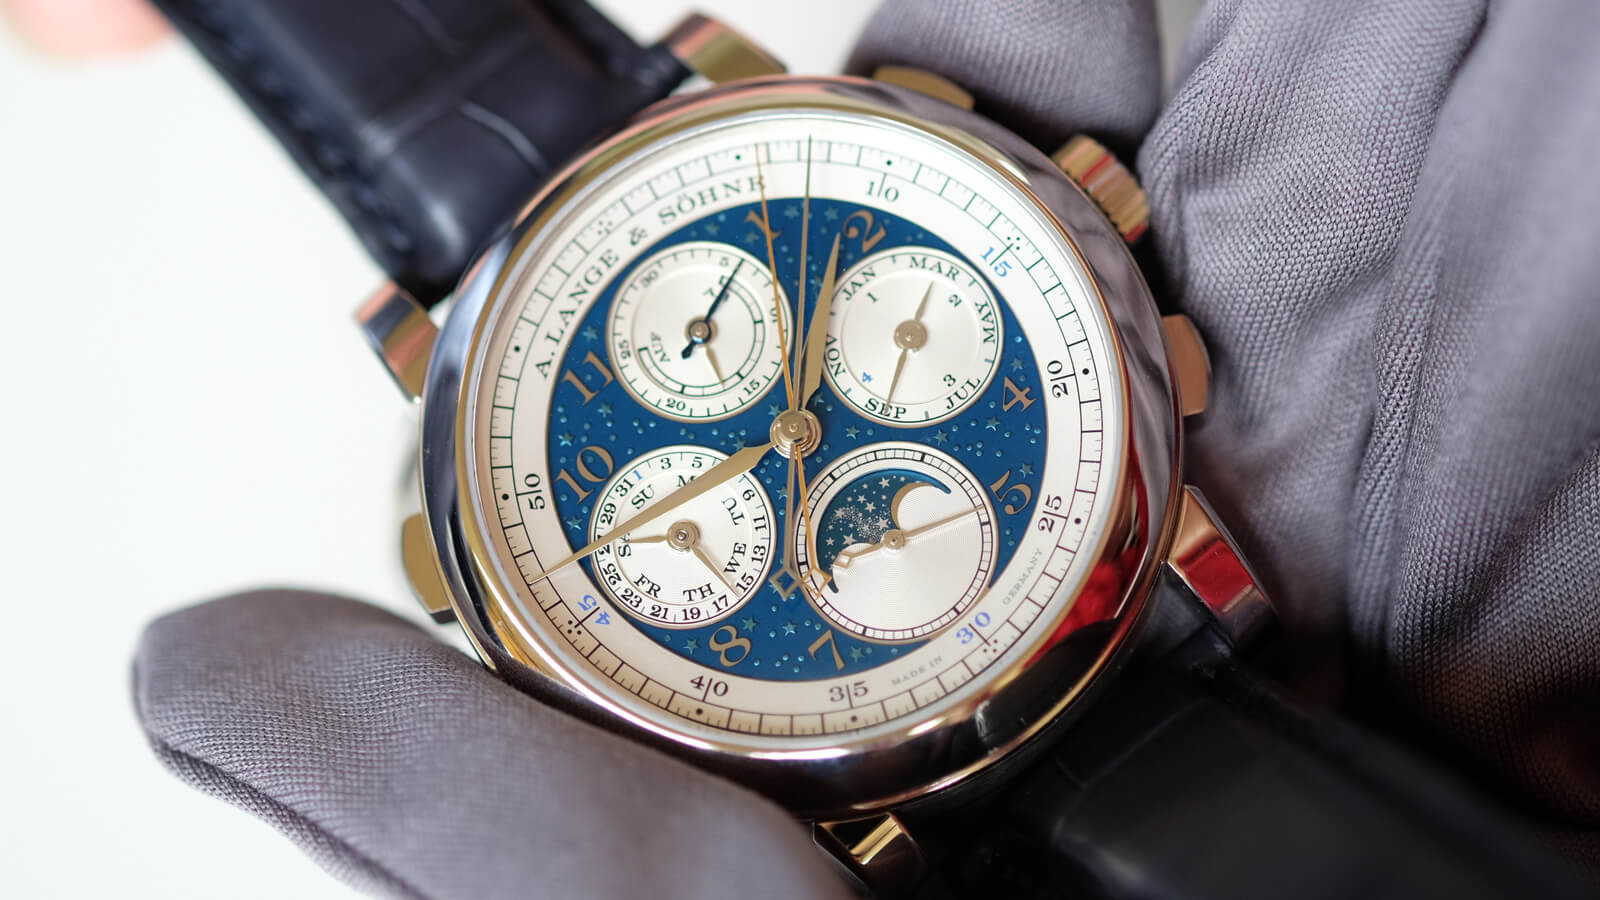 A. Lange & Sohne 1815 Rattrapante Perpetual Calendar Handwerkskunst - a timepiece with a chronograph, rattrapante and perpetual calendar